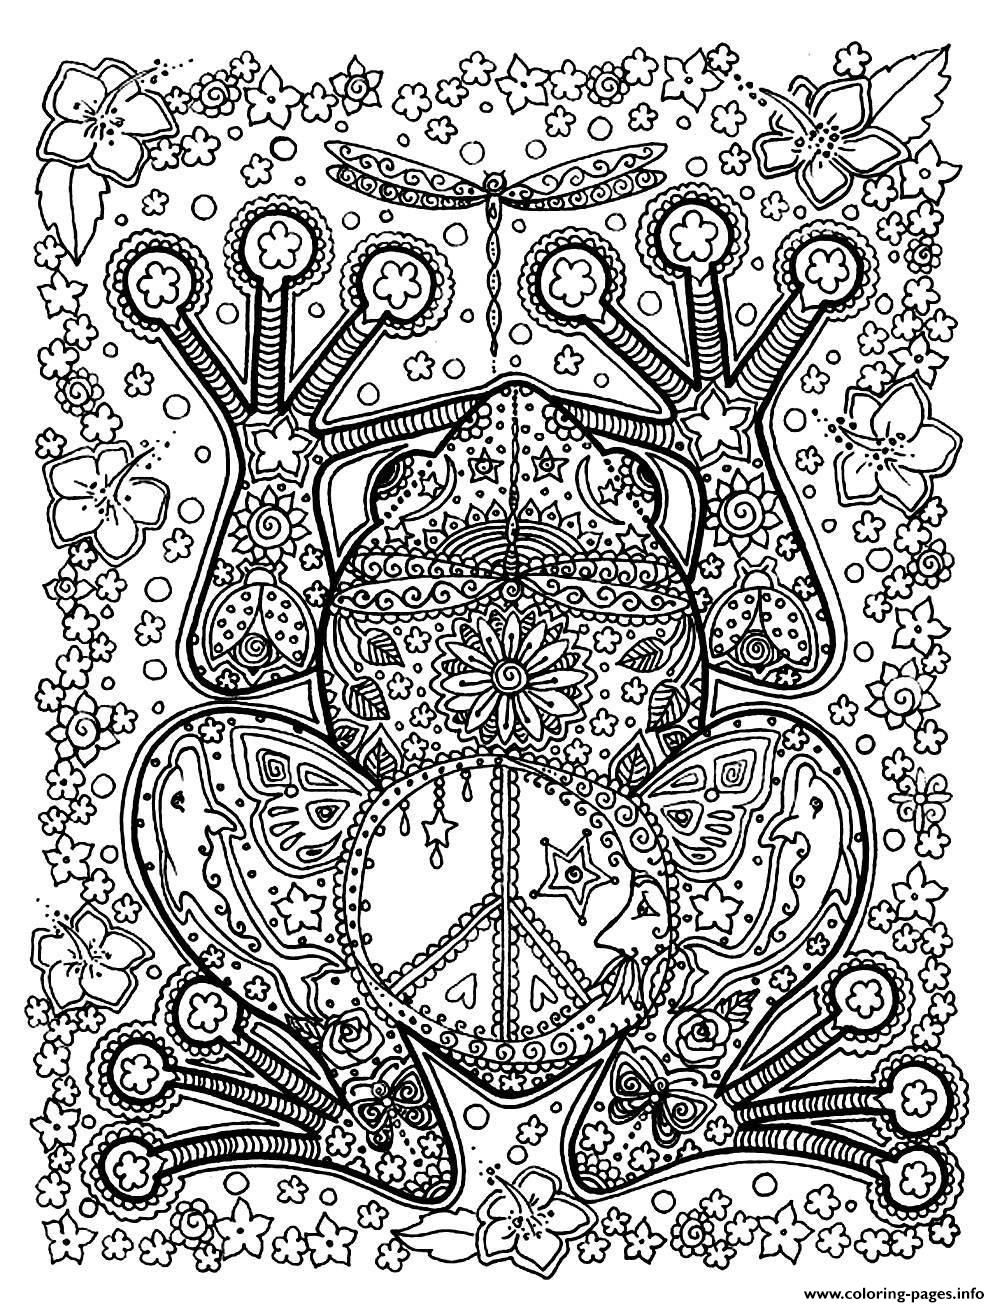 Adult Animals Big Frog Coloring Pages Printable And Book To Print For Free Find More Online Kids Adults Of